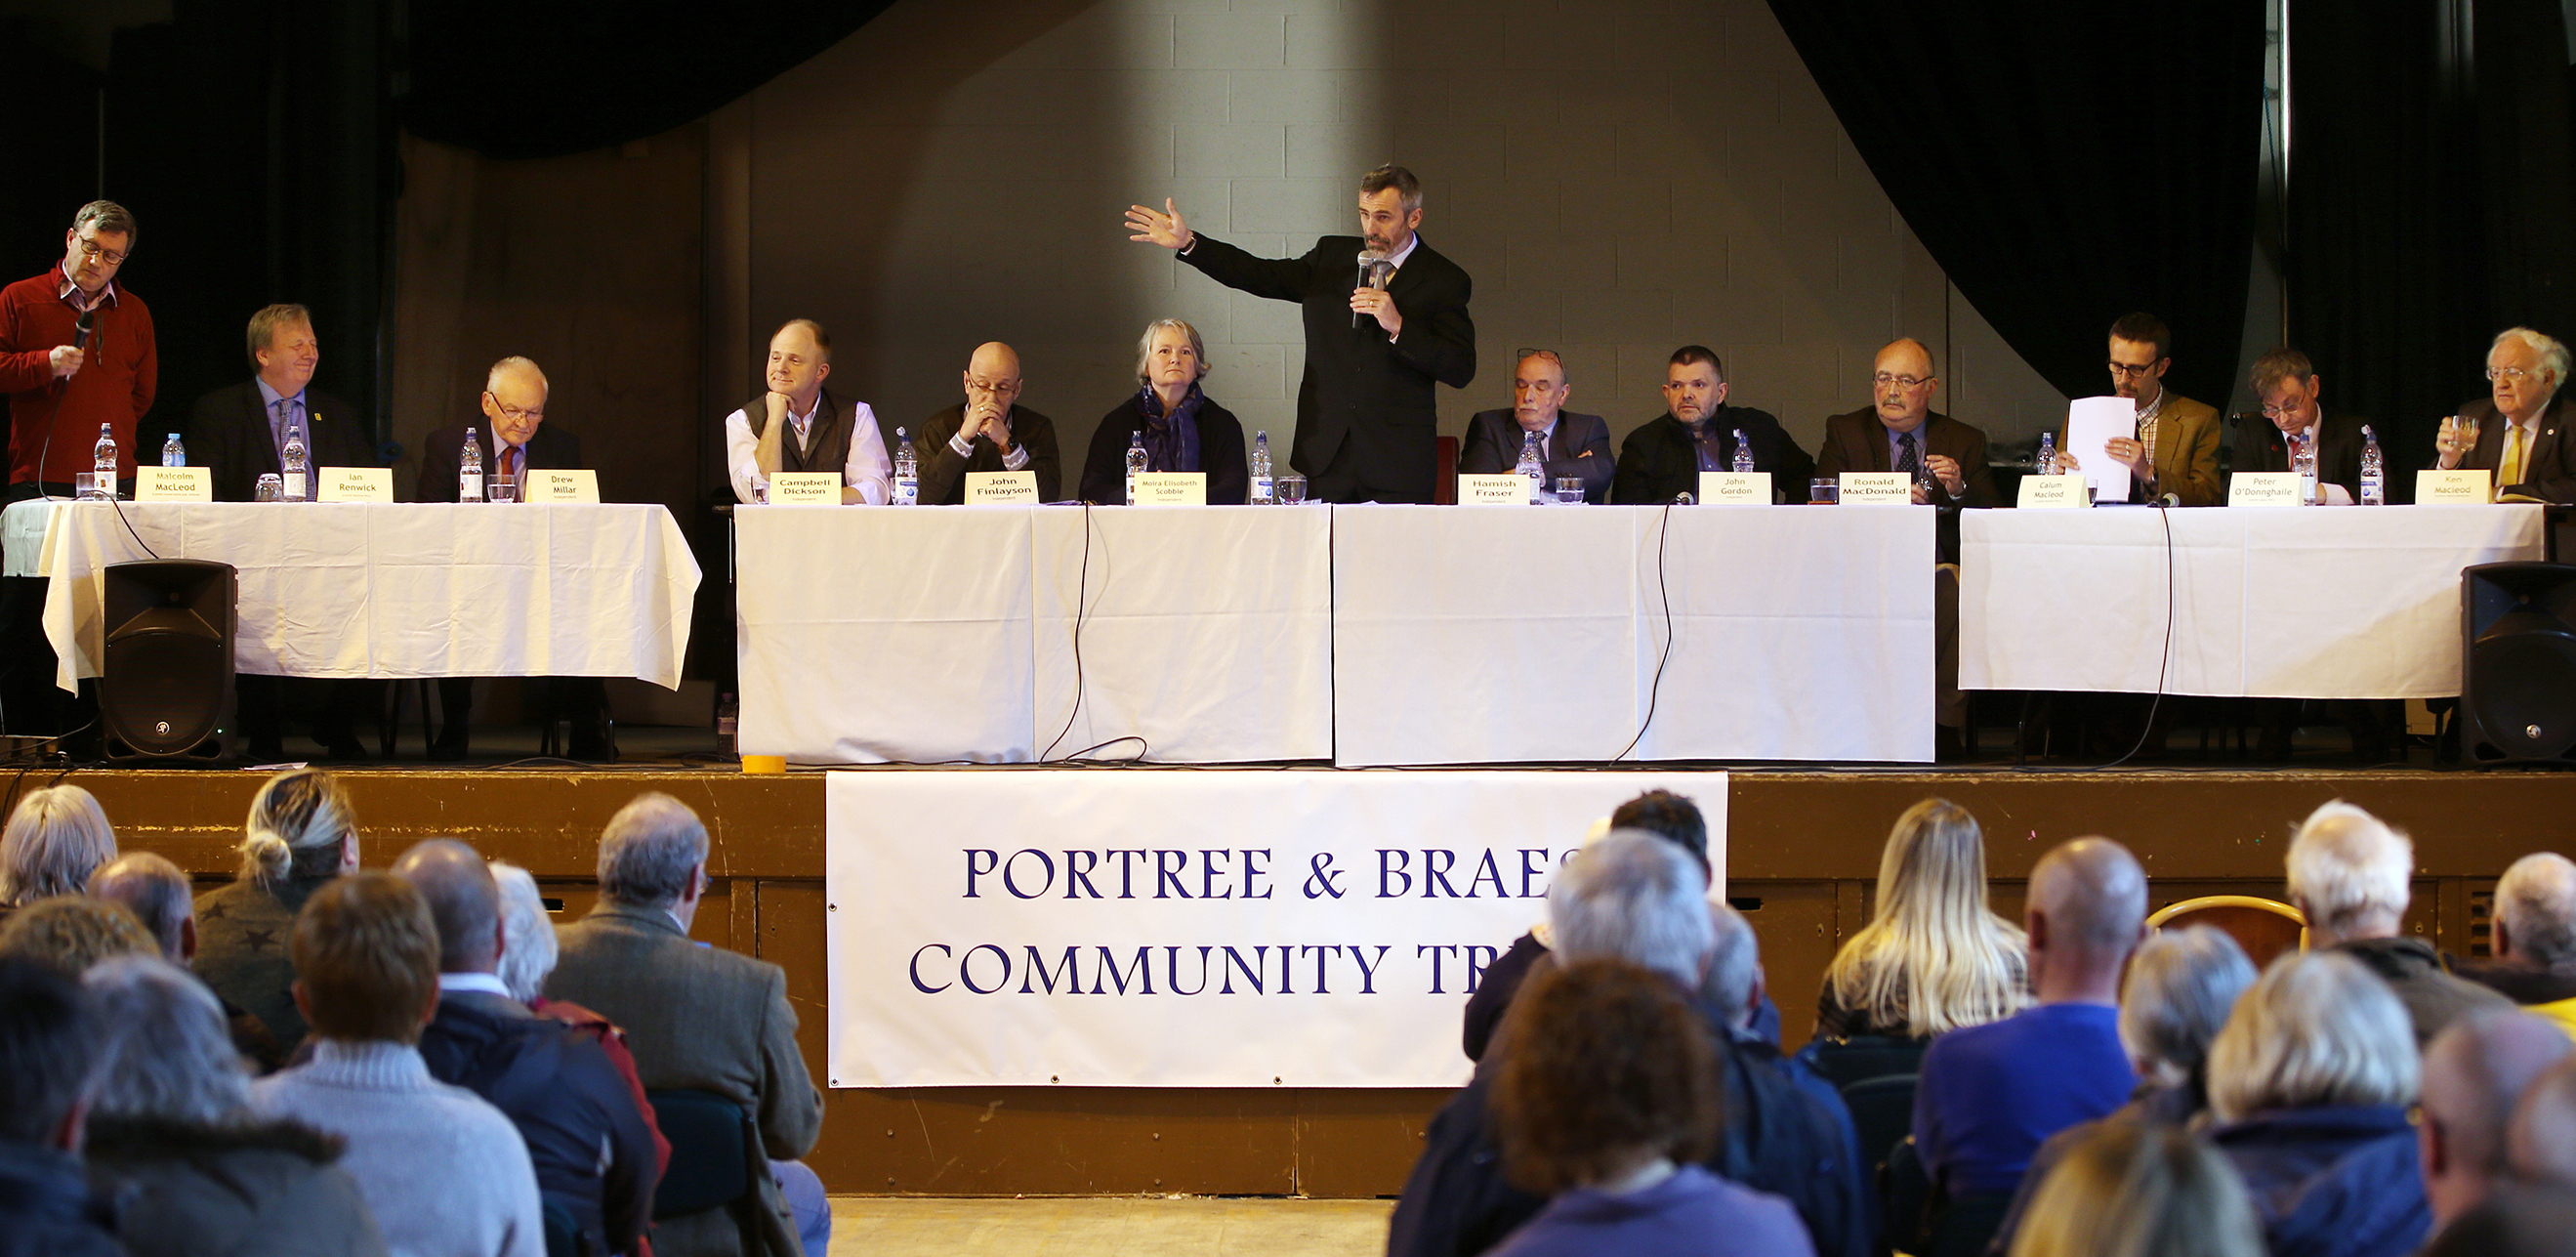 The candidates at a recent hustings event in Portree